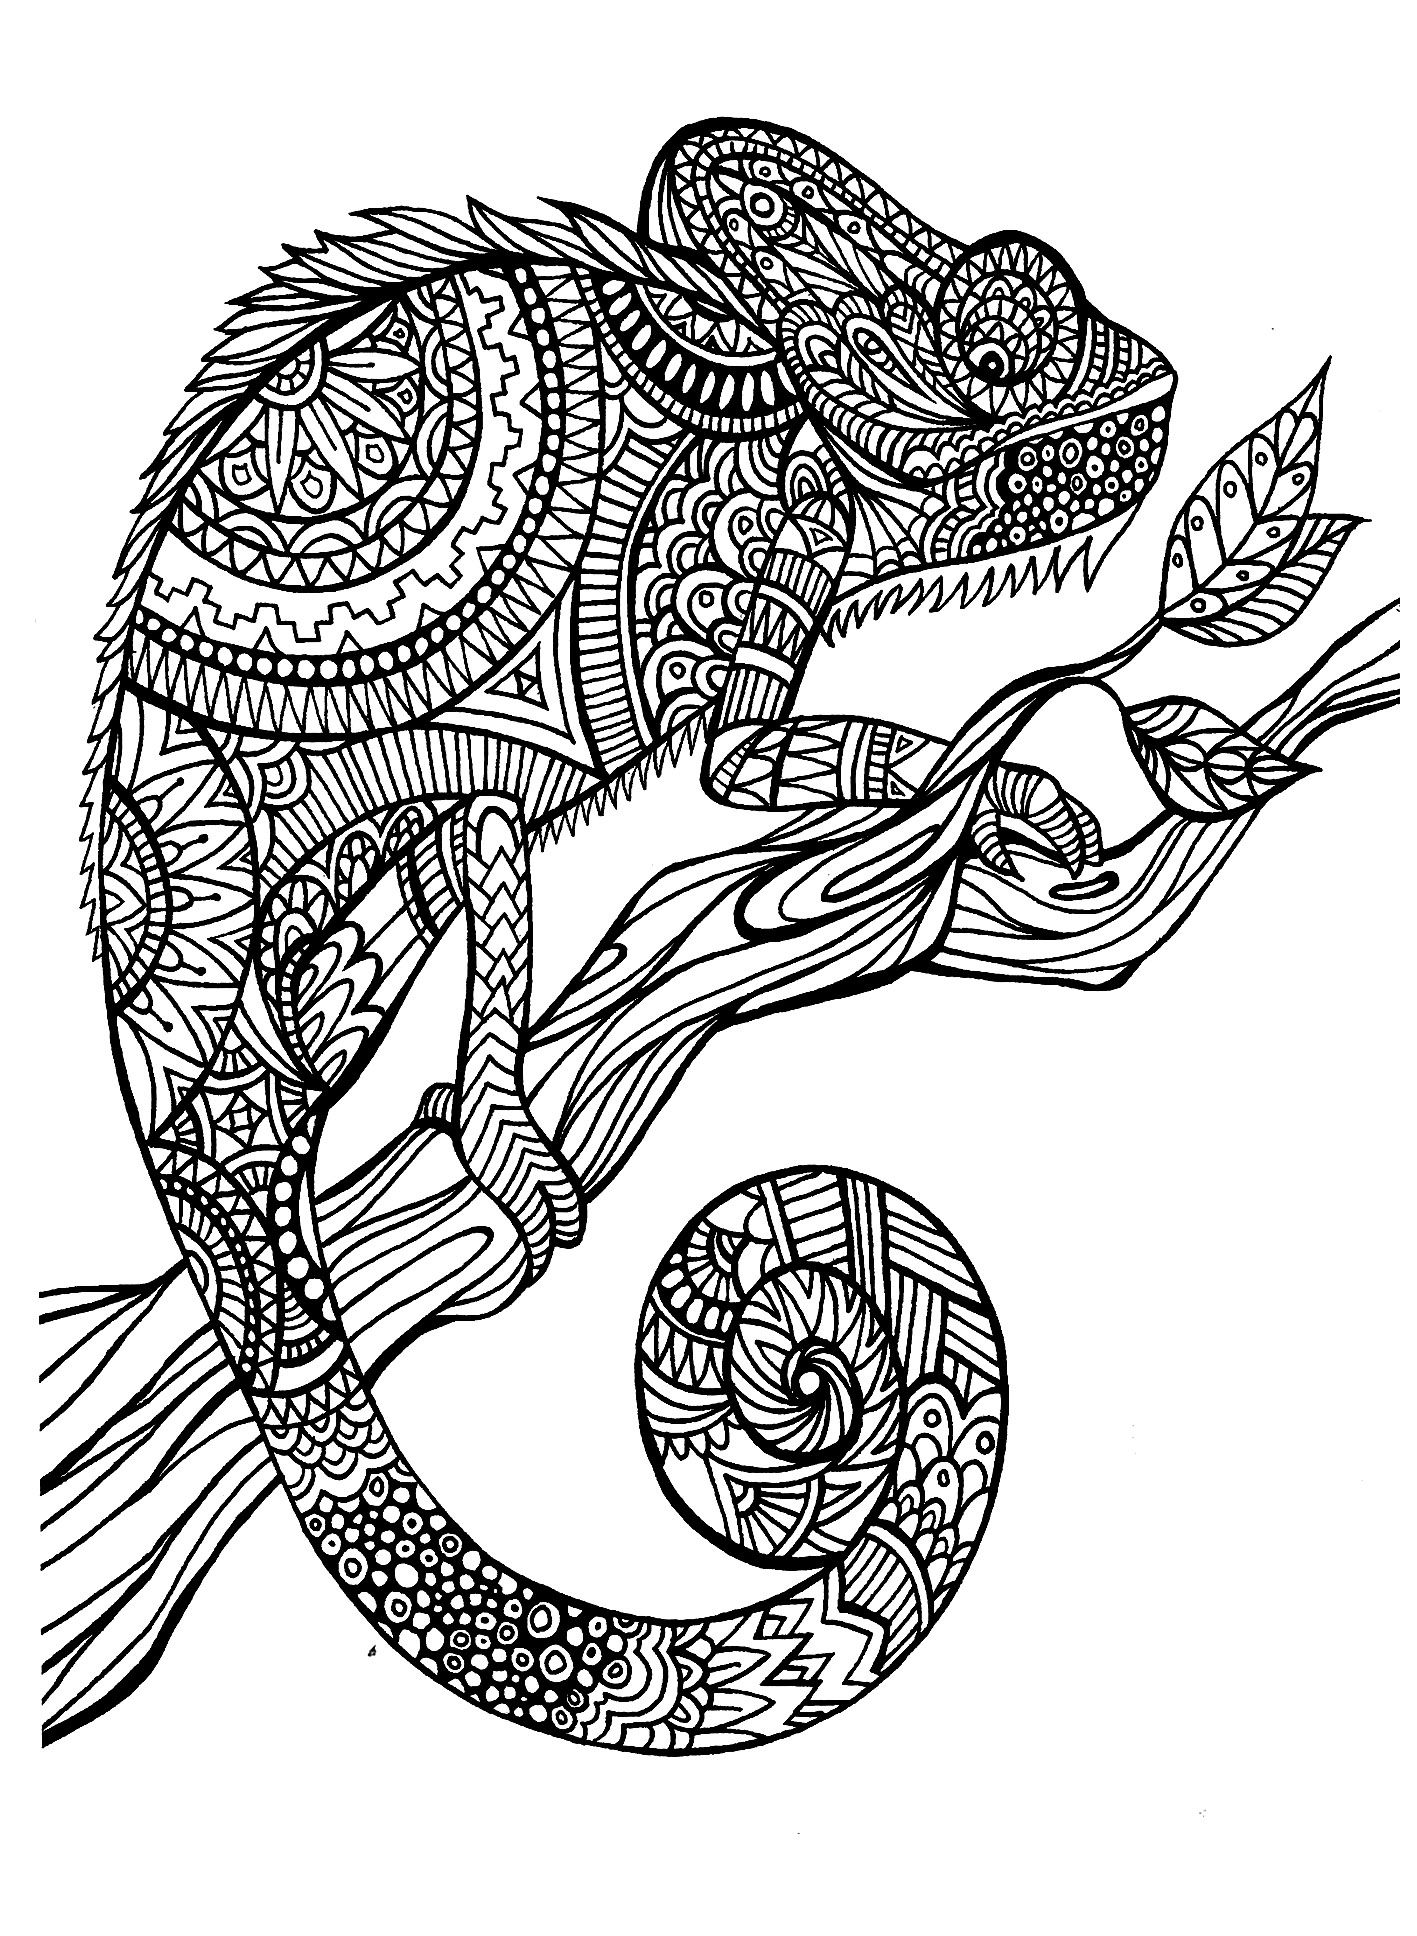 Free coloring pages for adults - Free Coloring Page Coloring Adult Cameleon Patterns A Magnificien Cameleon To Color